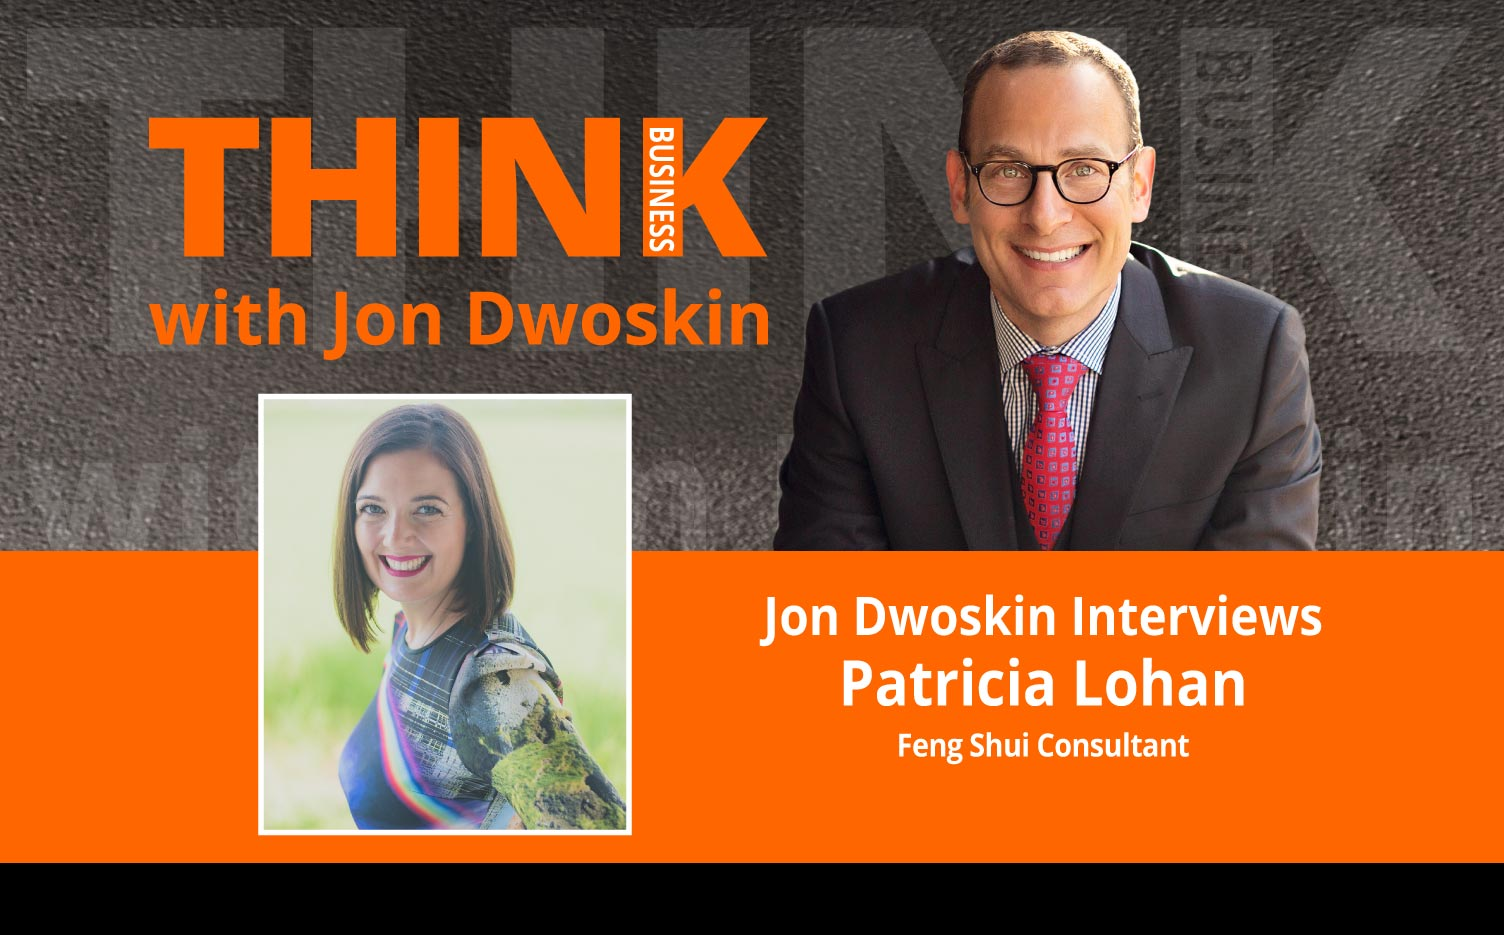 THINK Business Podcast: Jon Dwoskin Interviews Patricia Lohan, Feng Shui Consultant